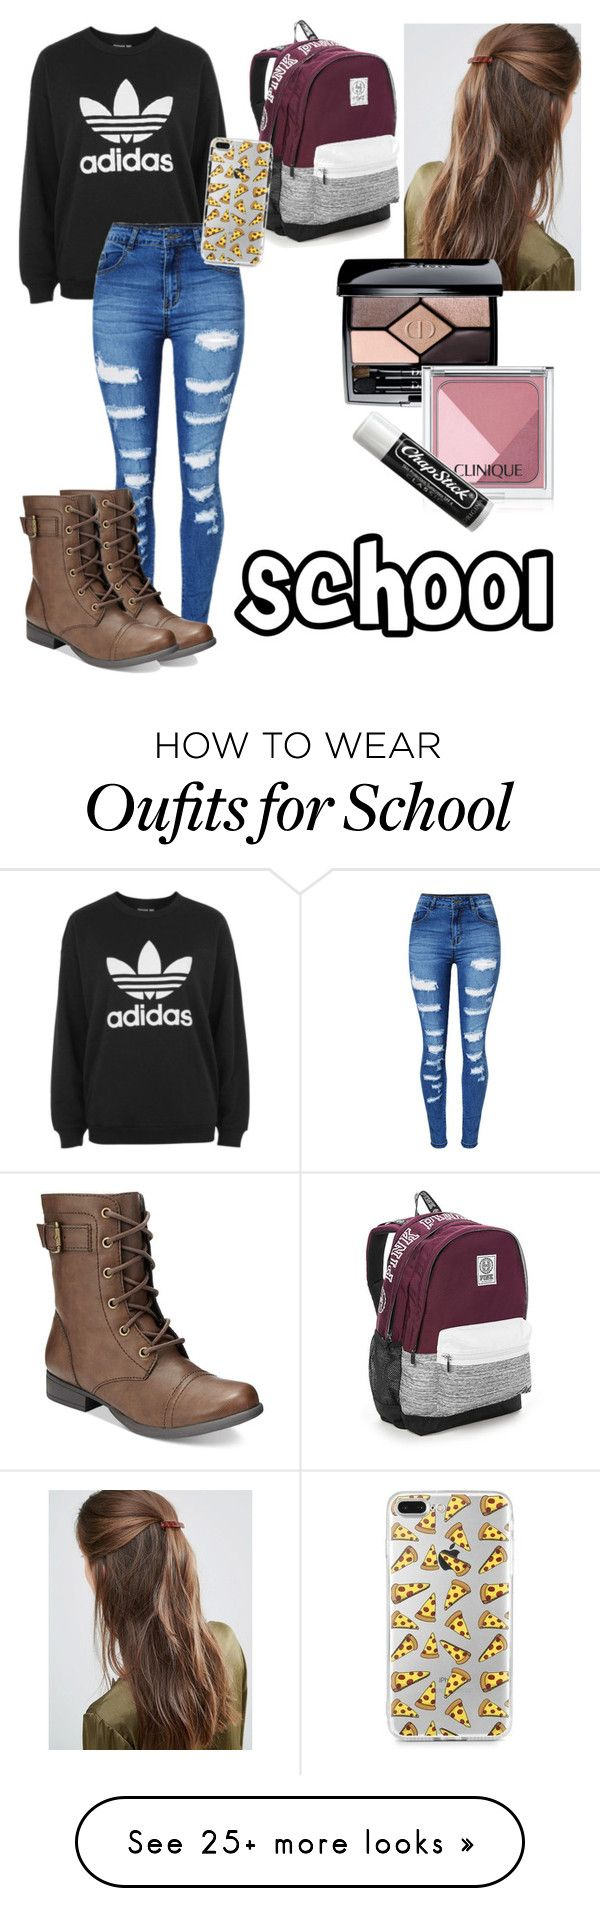 """School"" by erbrock on Polyvore featuring adidas, WithChic, American Rag Cie, DesignB London, Christian Dior, Clinique, Chapstick and Victoria's Secret"